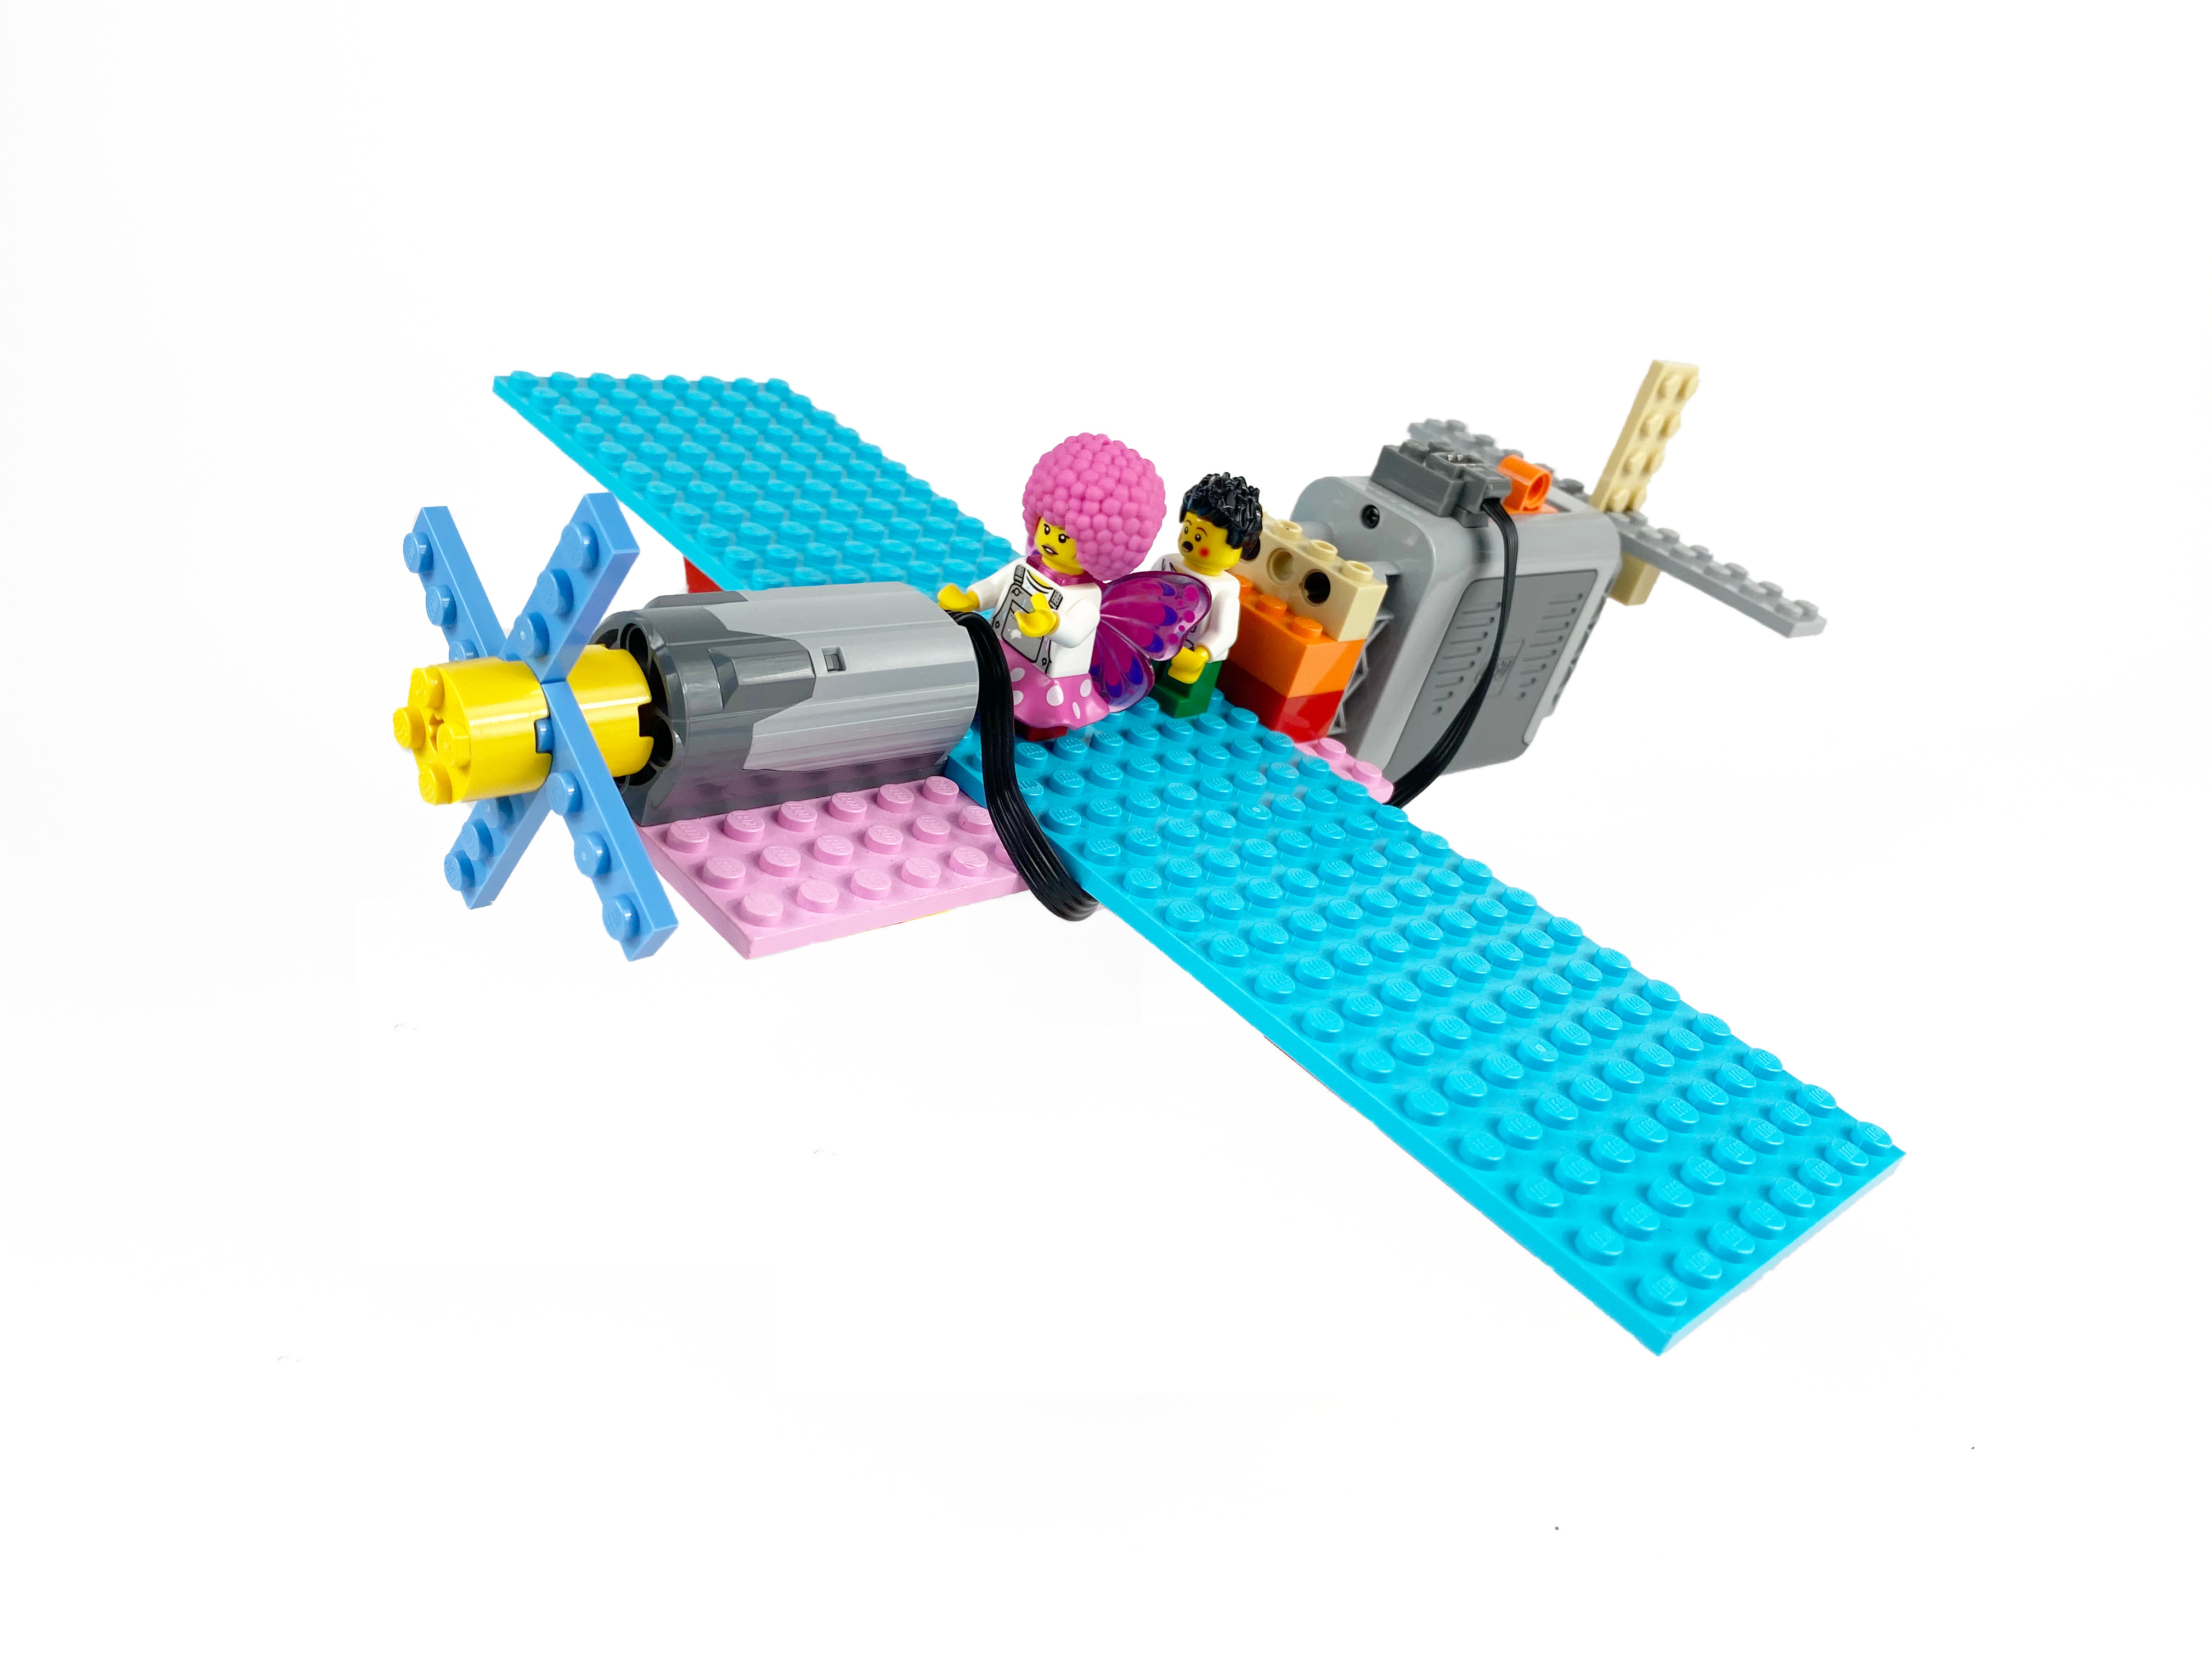 Lego Engineering Ages: 5 - 7